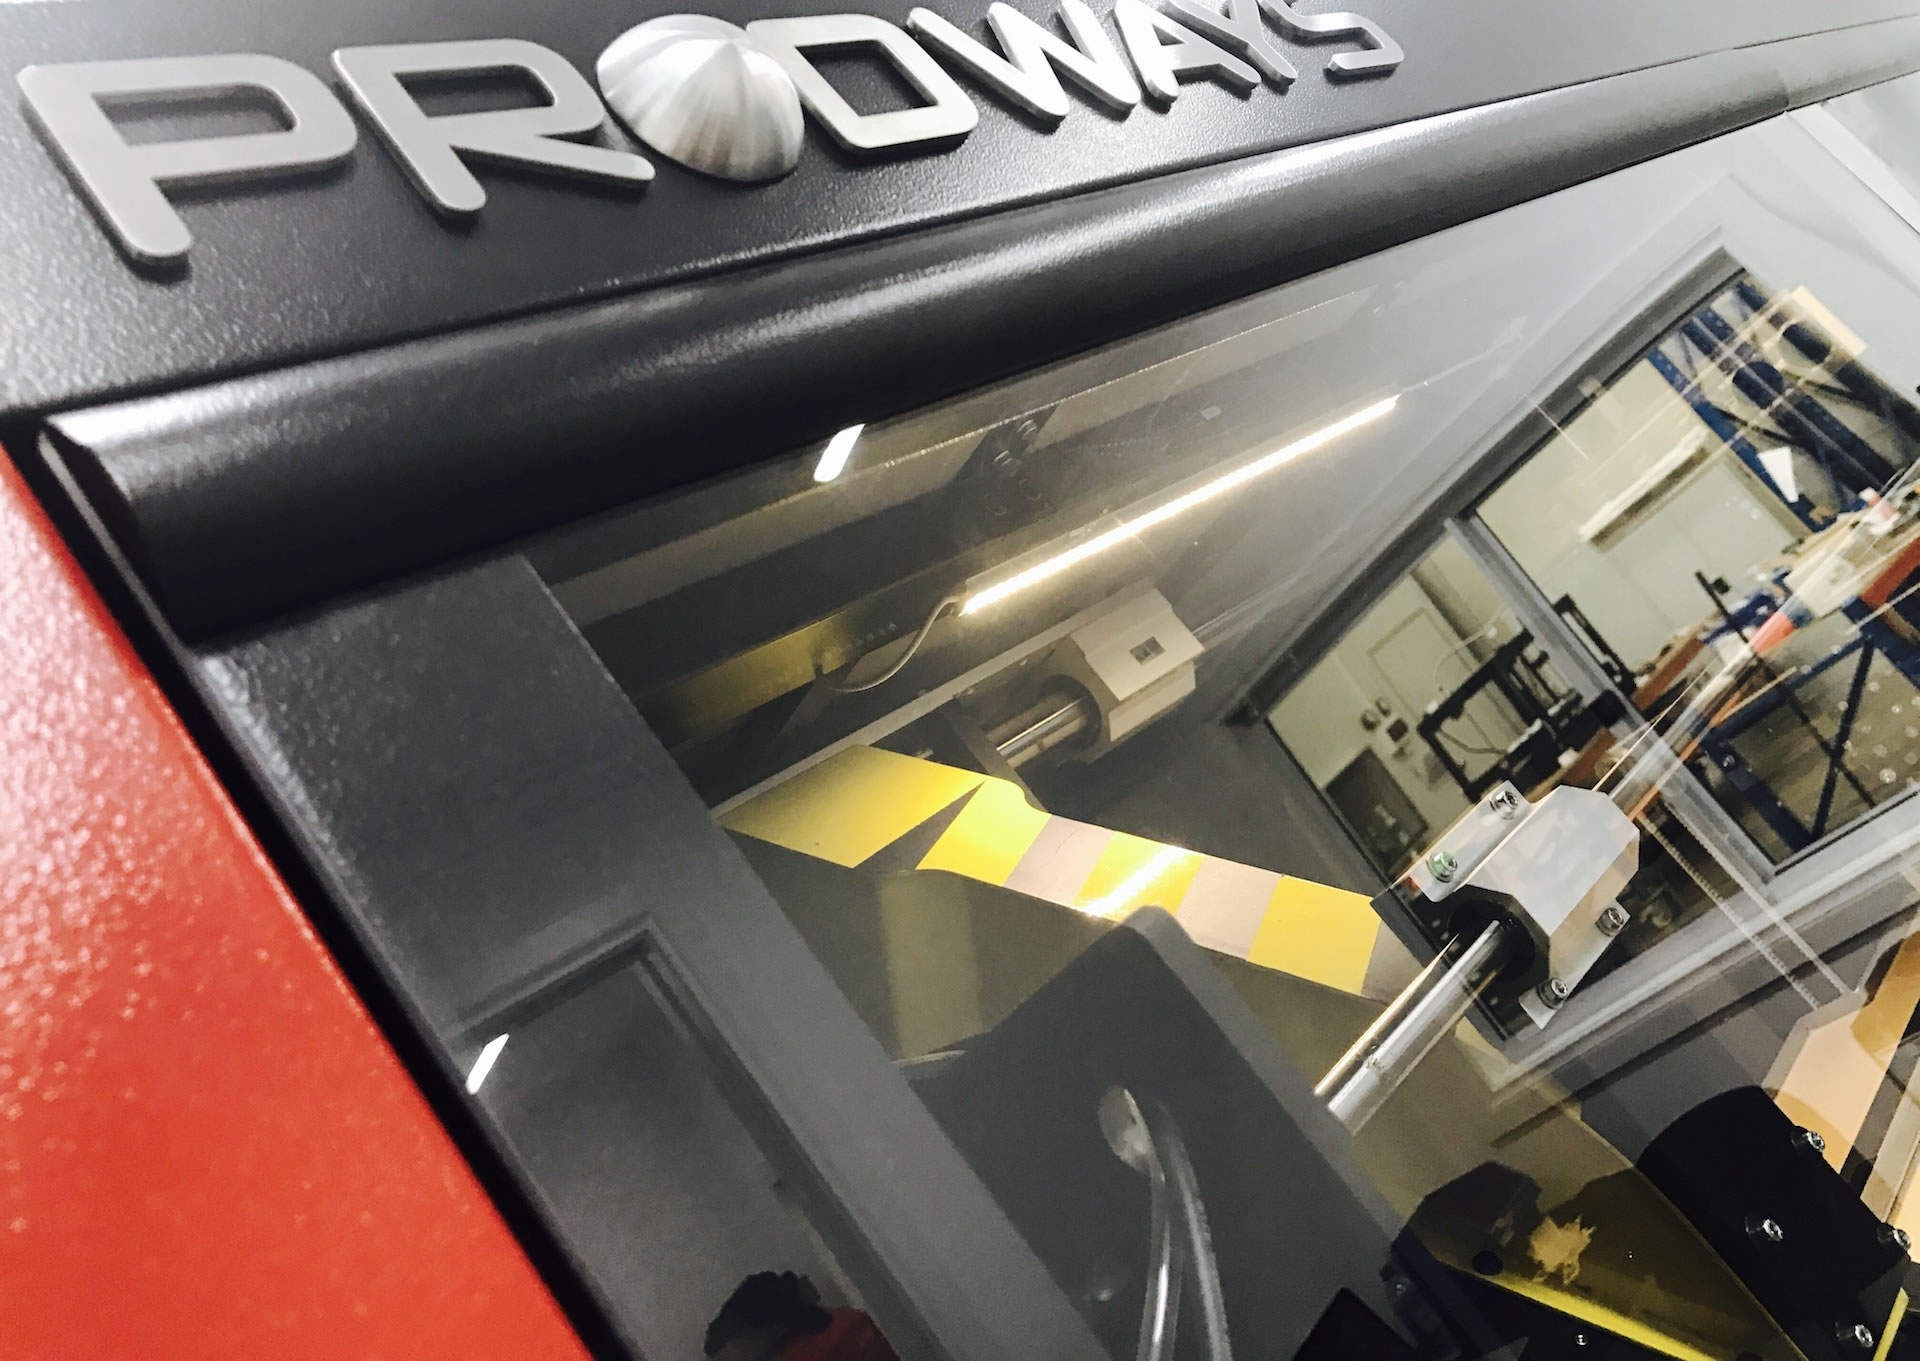 Additive manufacturing acquisitions: Prodways & Solidscape ...